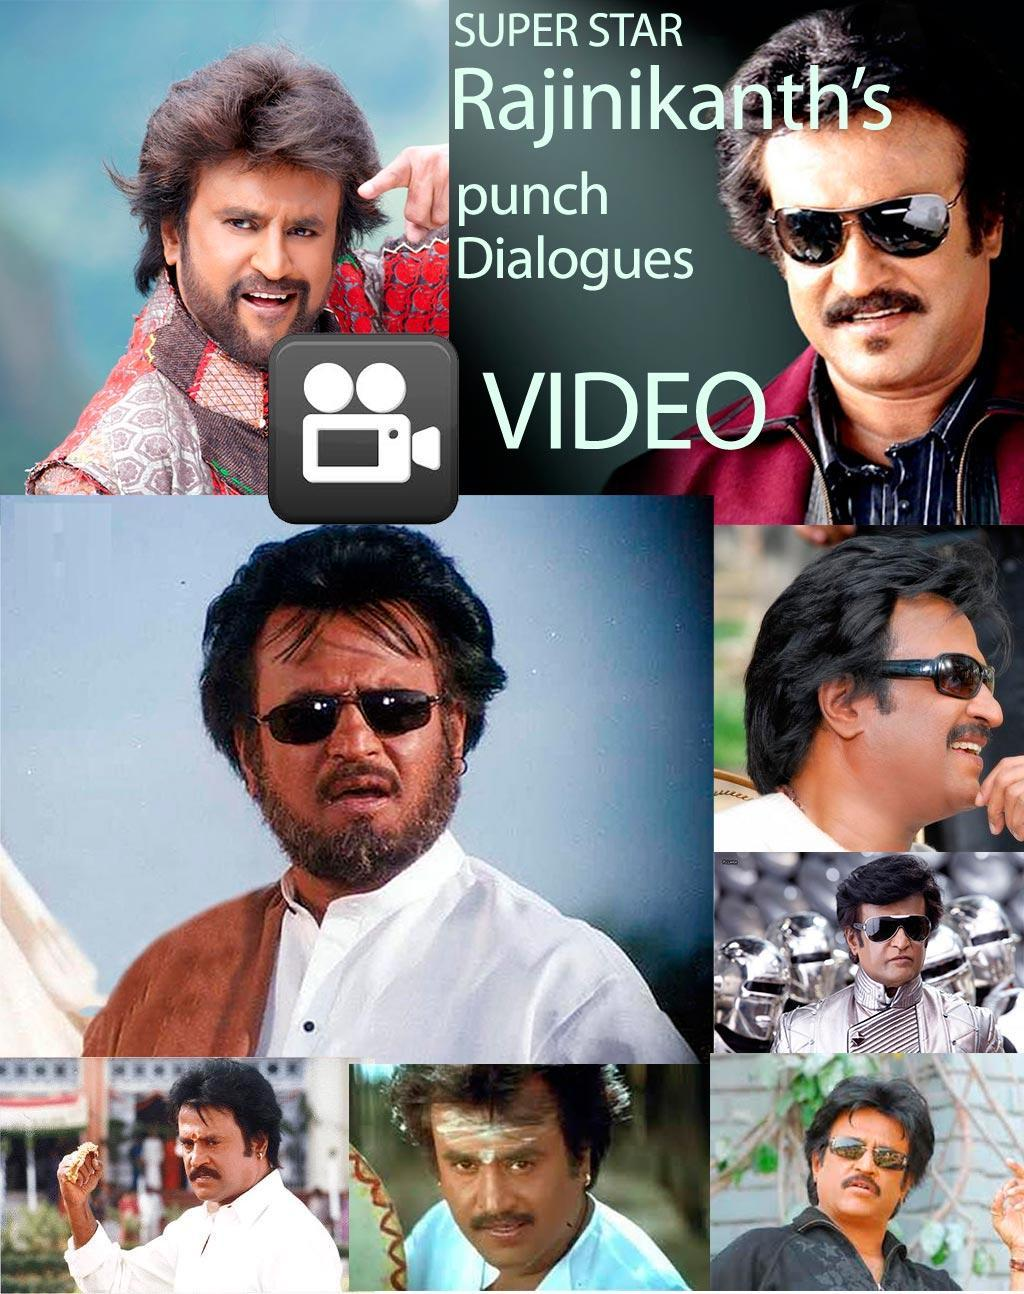 Rajinikanth Punch Dialogues for Android - APK Download